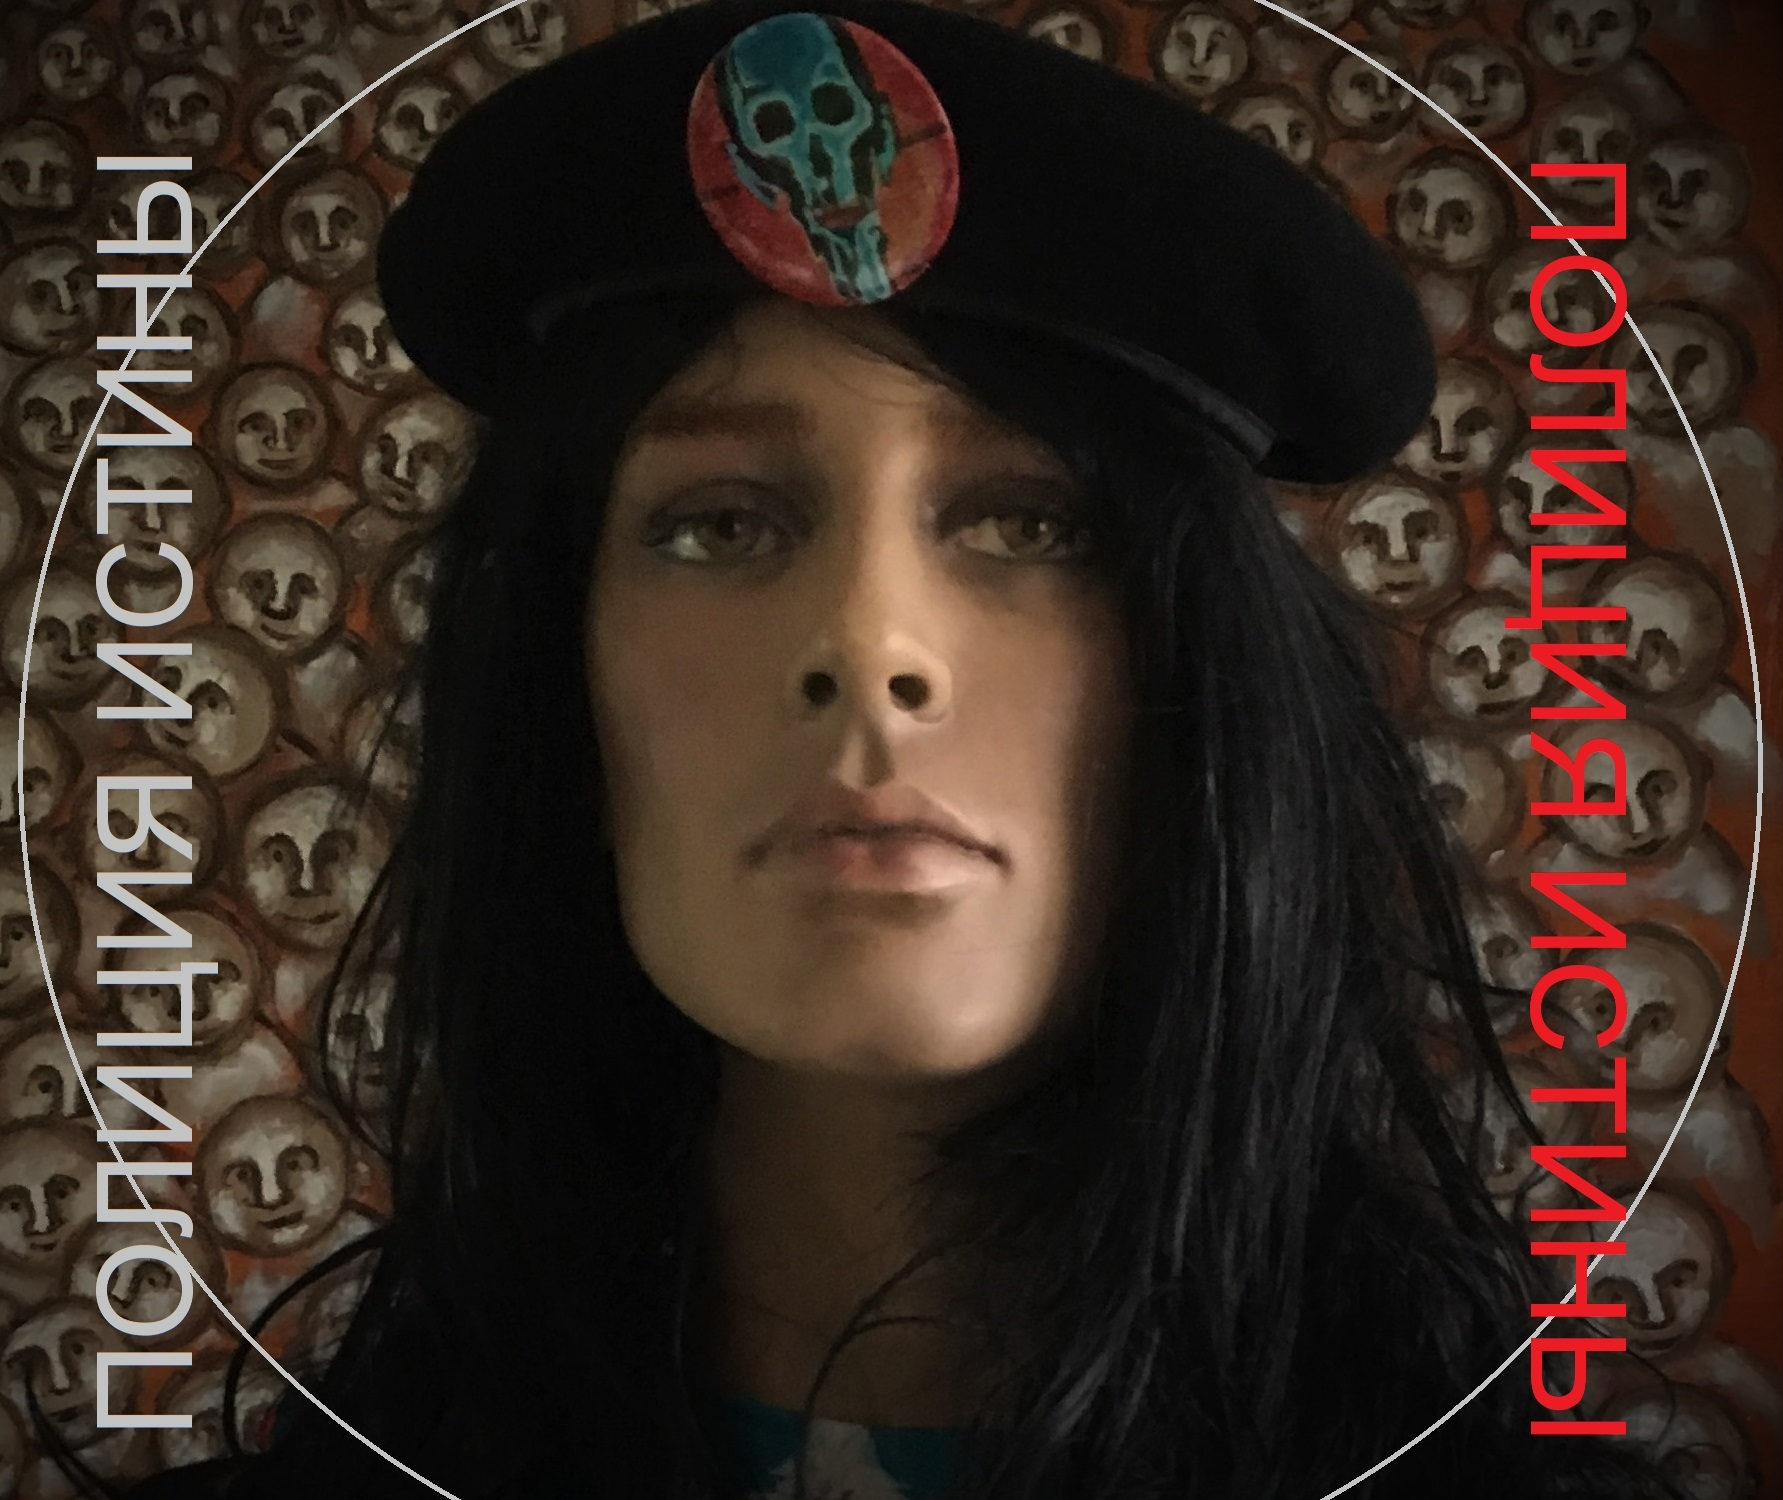 Лена Хейдиз. Полиция Истины. Lena Hades, Truth Police.